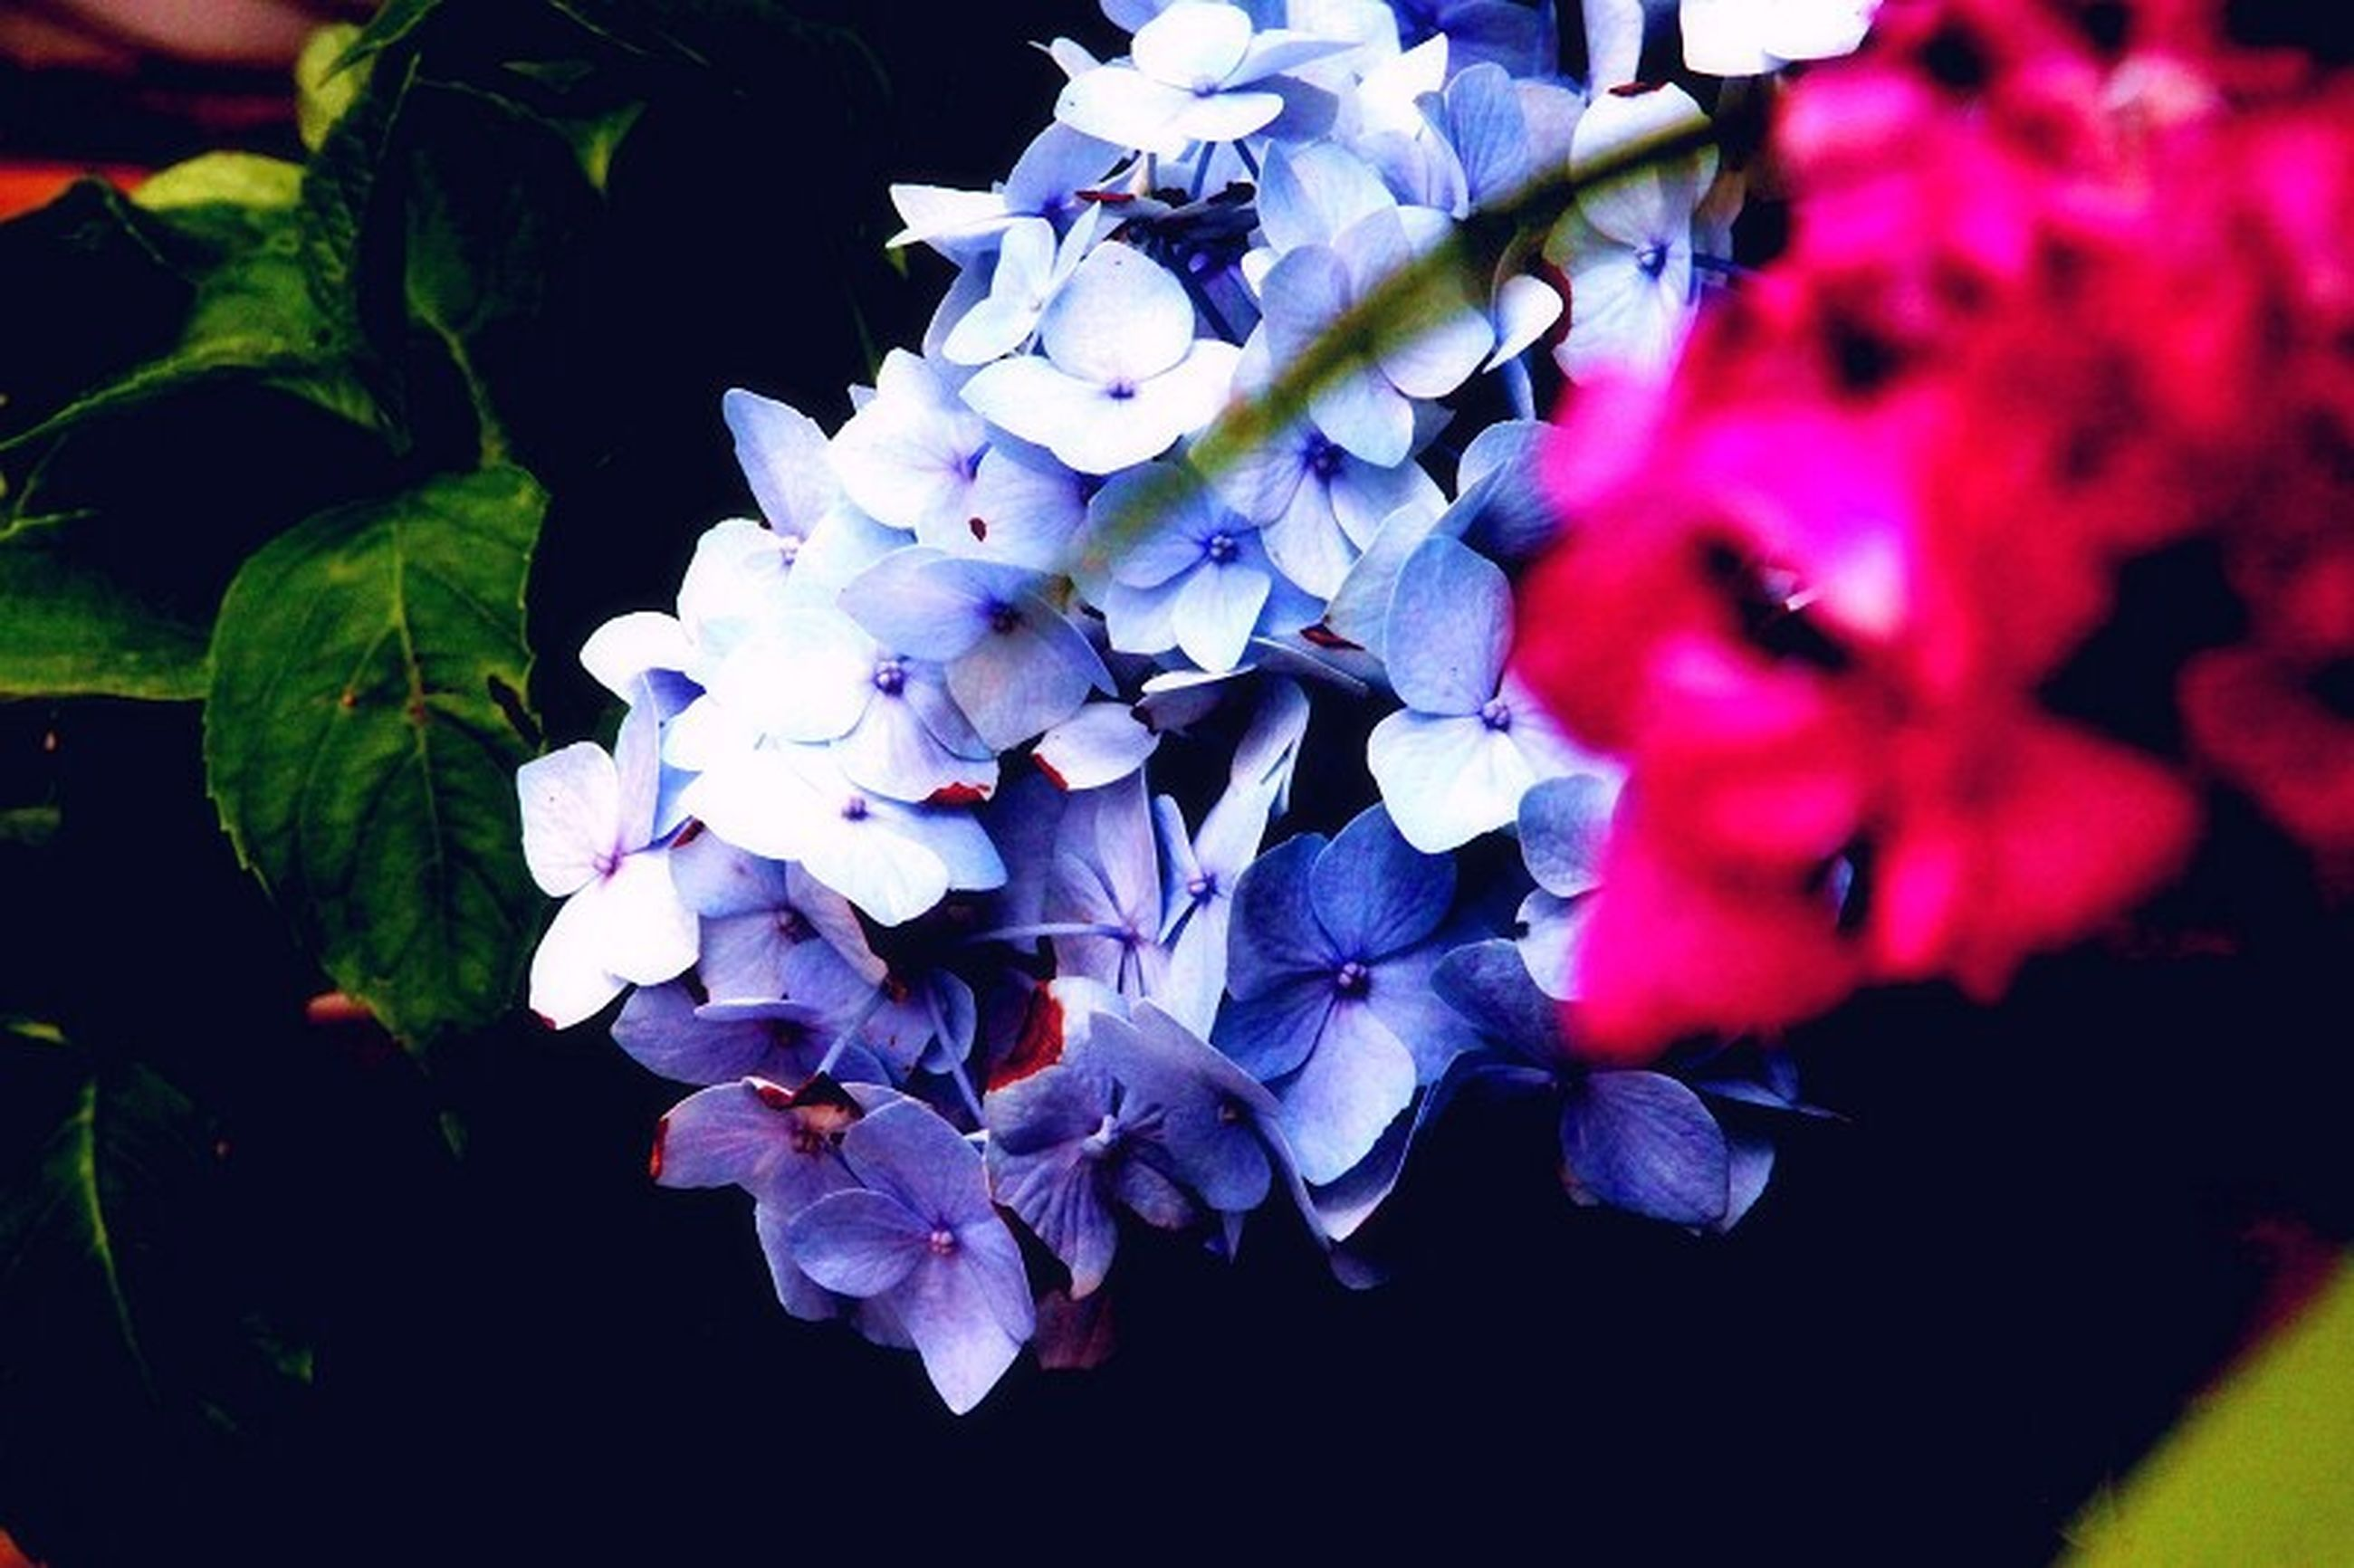 flower, freshness, petal, fragility, growth, beauty in nature, close-up, flower head, nature, plant, blooming, purple, focus on foreground, leaf, bunch of flowers, high angle view, in bloom, no people, selective focus, hydrangea